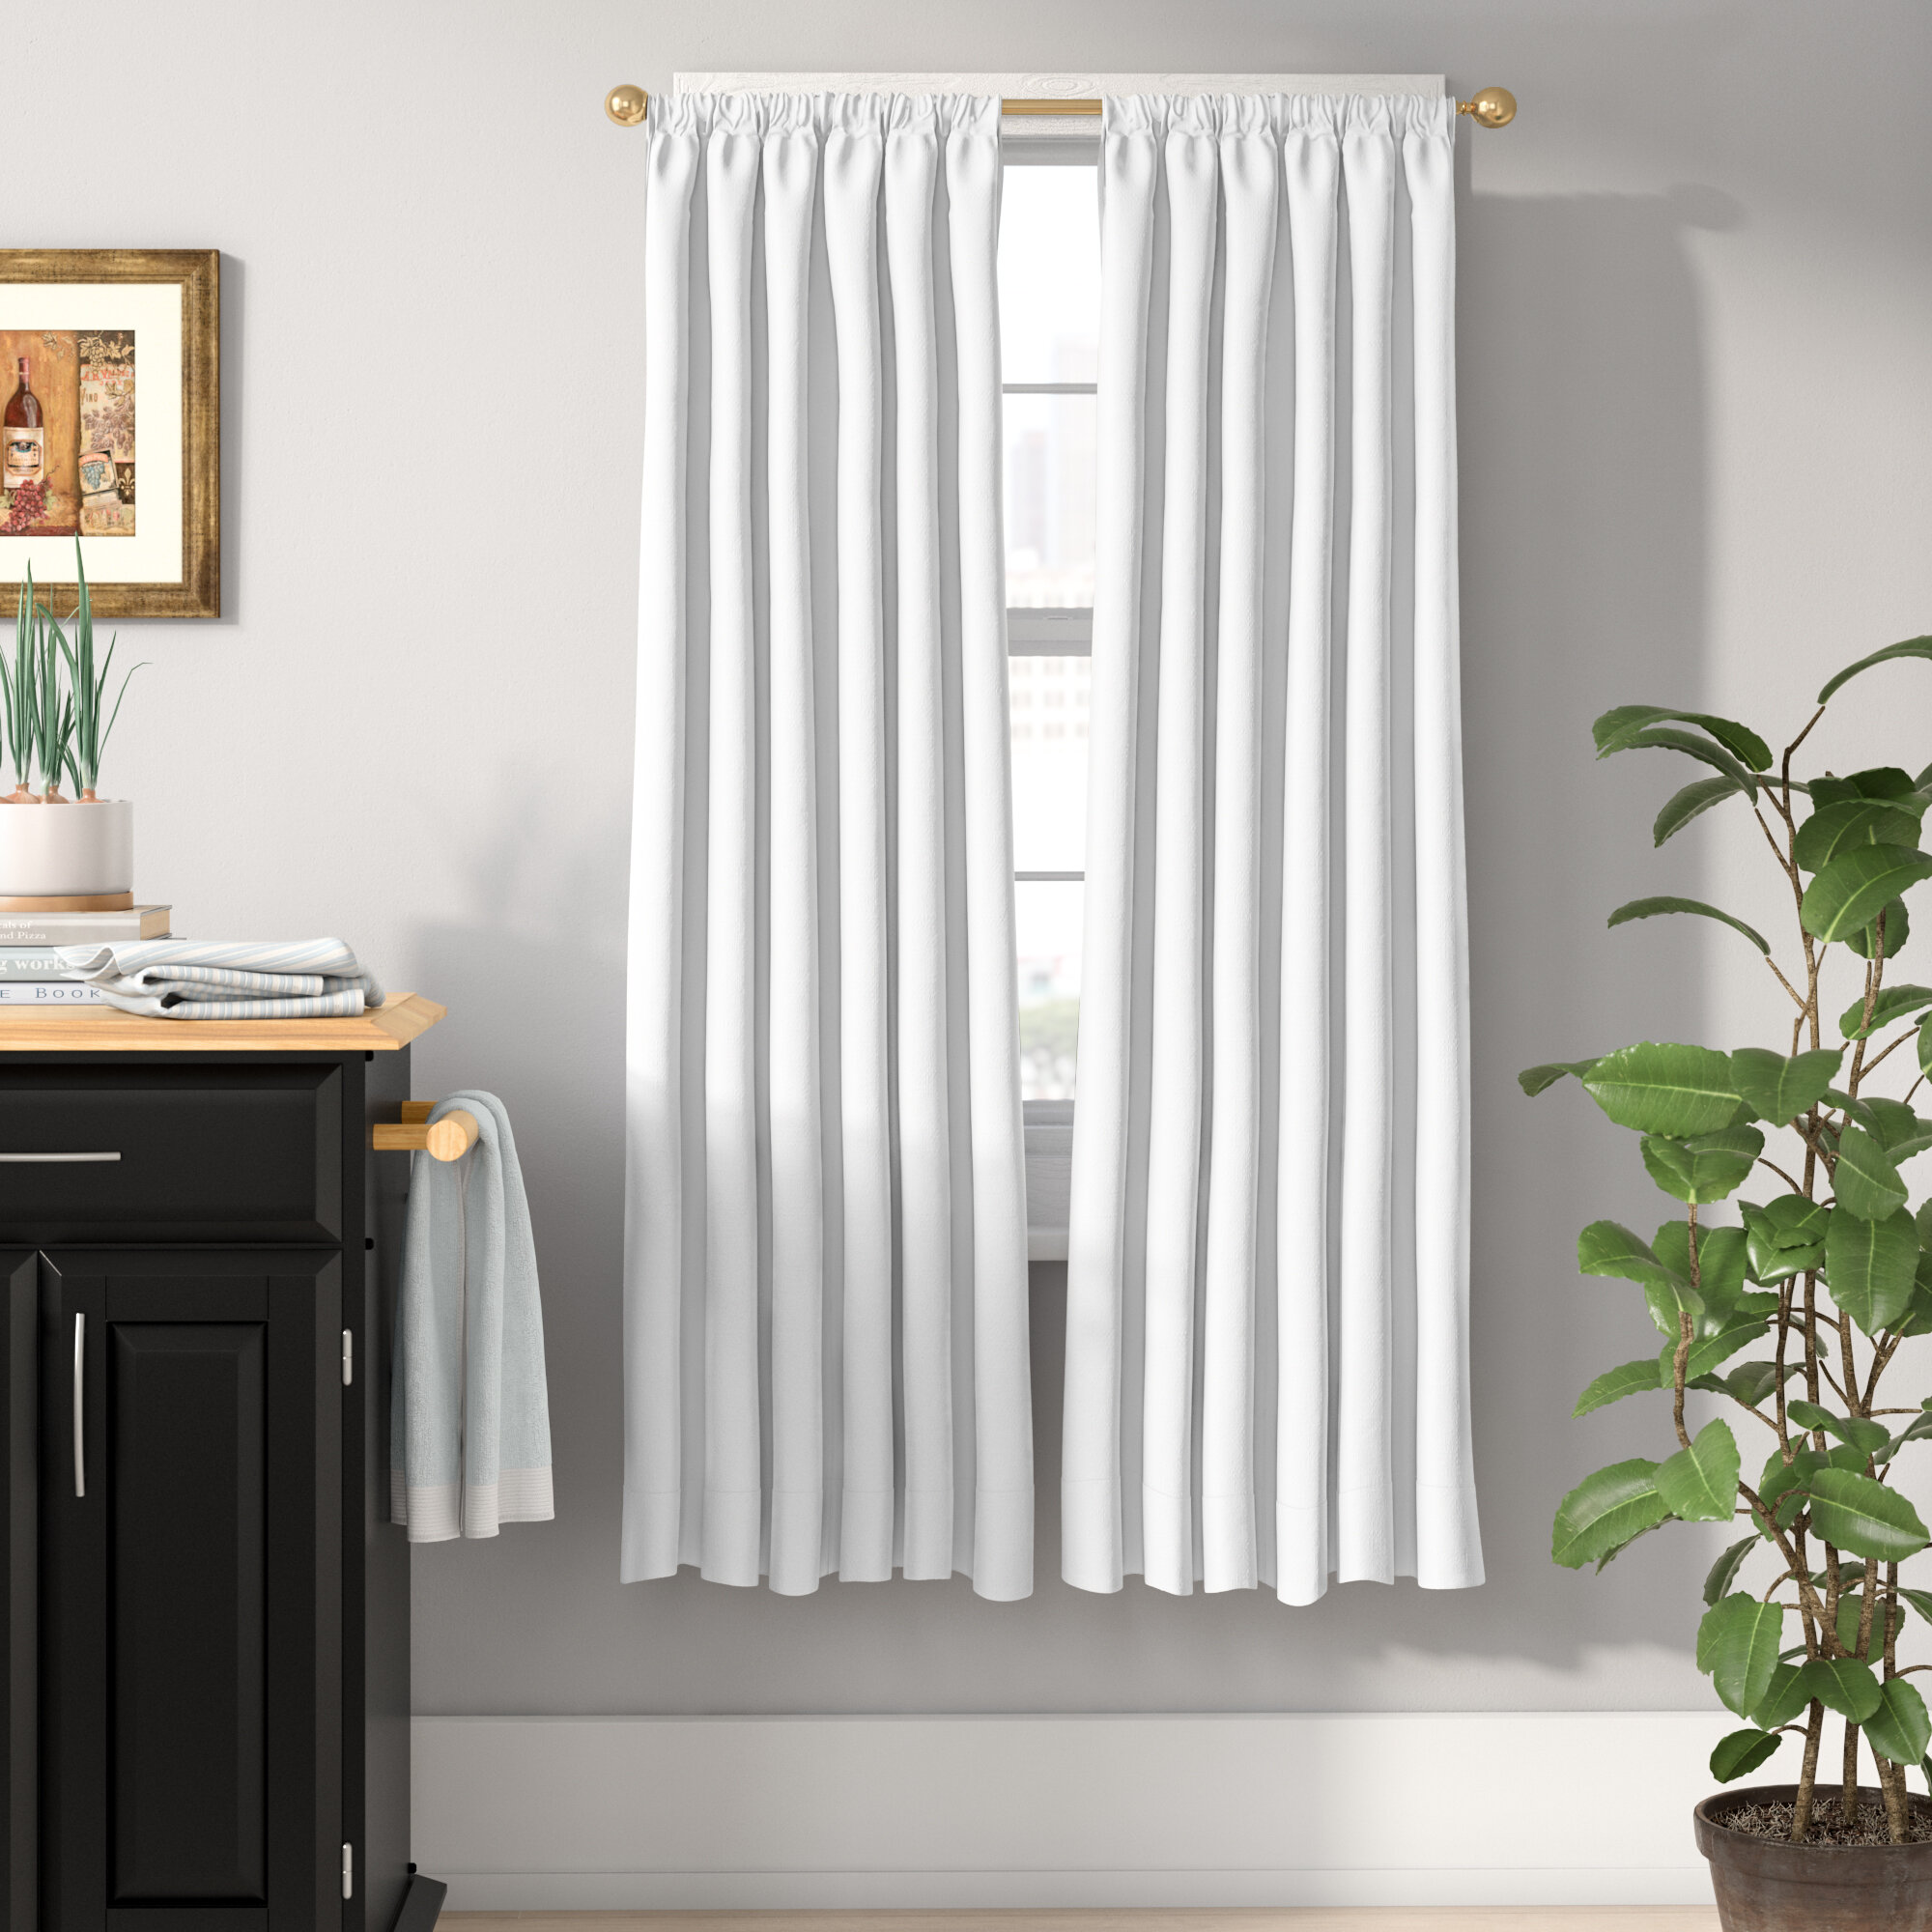 today thermal wide blackout garden inch curtains product curtain overstock shipping extra aurora free home panel x